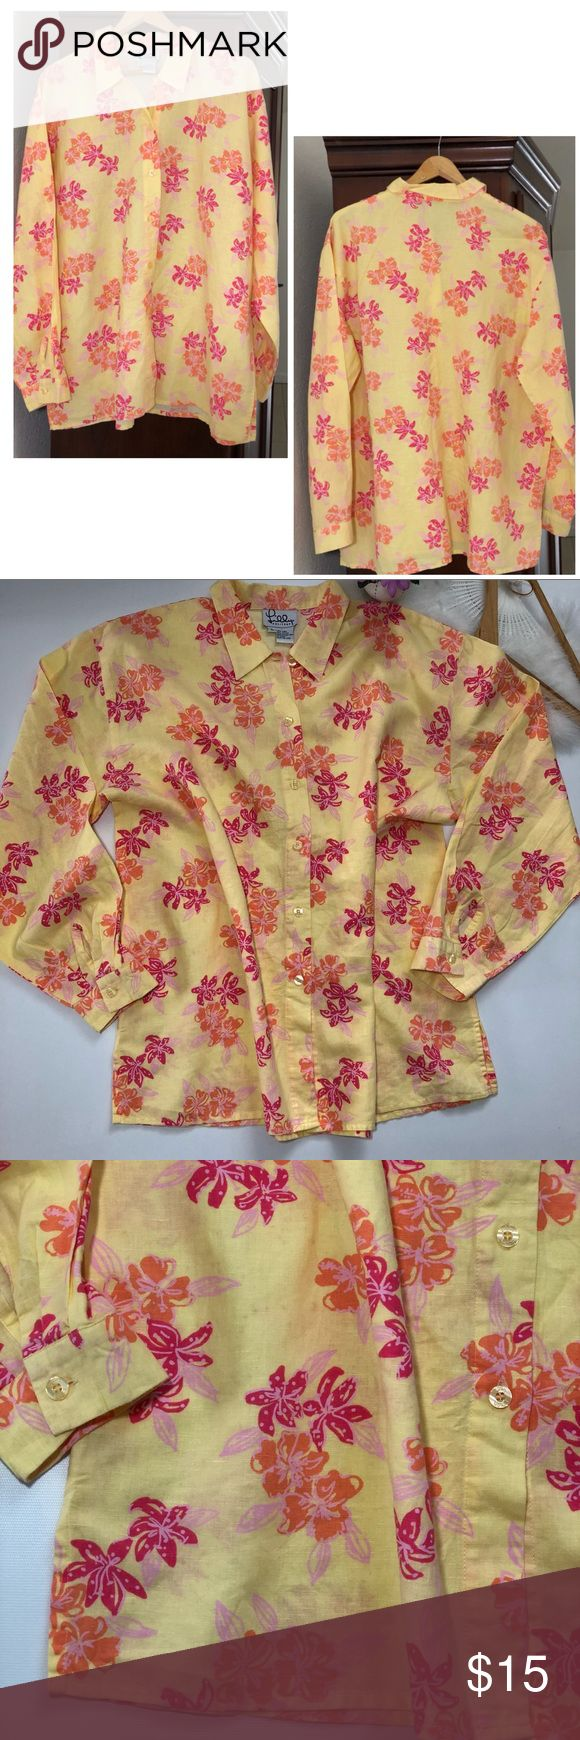 """Lilly Pulitzer linen long sleeves yellow blouse L Lilly Pulitzer. Size L. Yellow button down blouse / tunic Pink floral print. In pre loved conditions. Please see pictures for fabric information. ALL MEASUREMENTS ARE APPROXIMATE AND LAYING FLAT: 🔸LENGTH: 28.5"""" 🔸PIT TO PIT: 25"""" 🔸WAIST: 25.5"""" 🔸 SLEEVES: 23"""" FEEL FREE TO ASK QUESTIONS  I DO NOT TRADE Lilly Pulitzer Tops Button Down Shirts"""